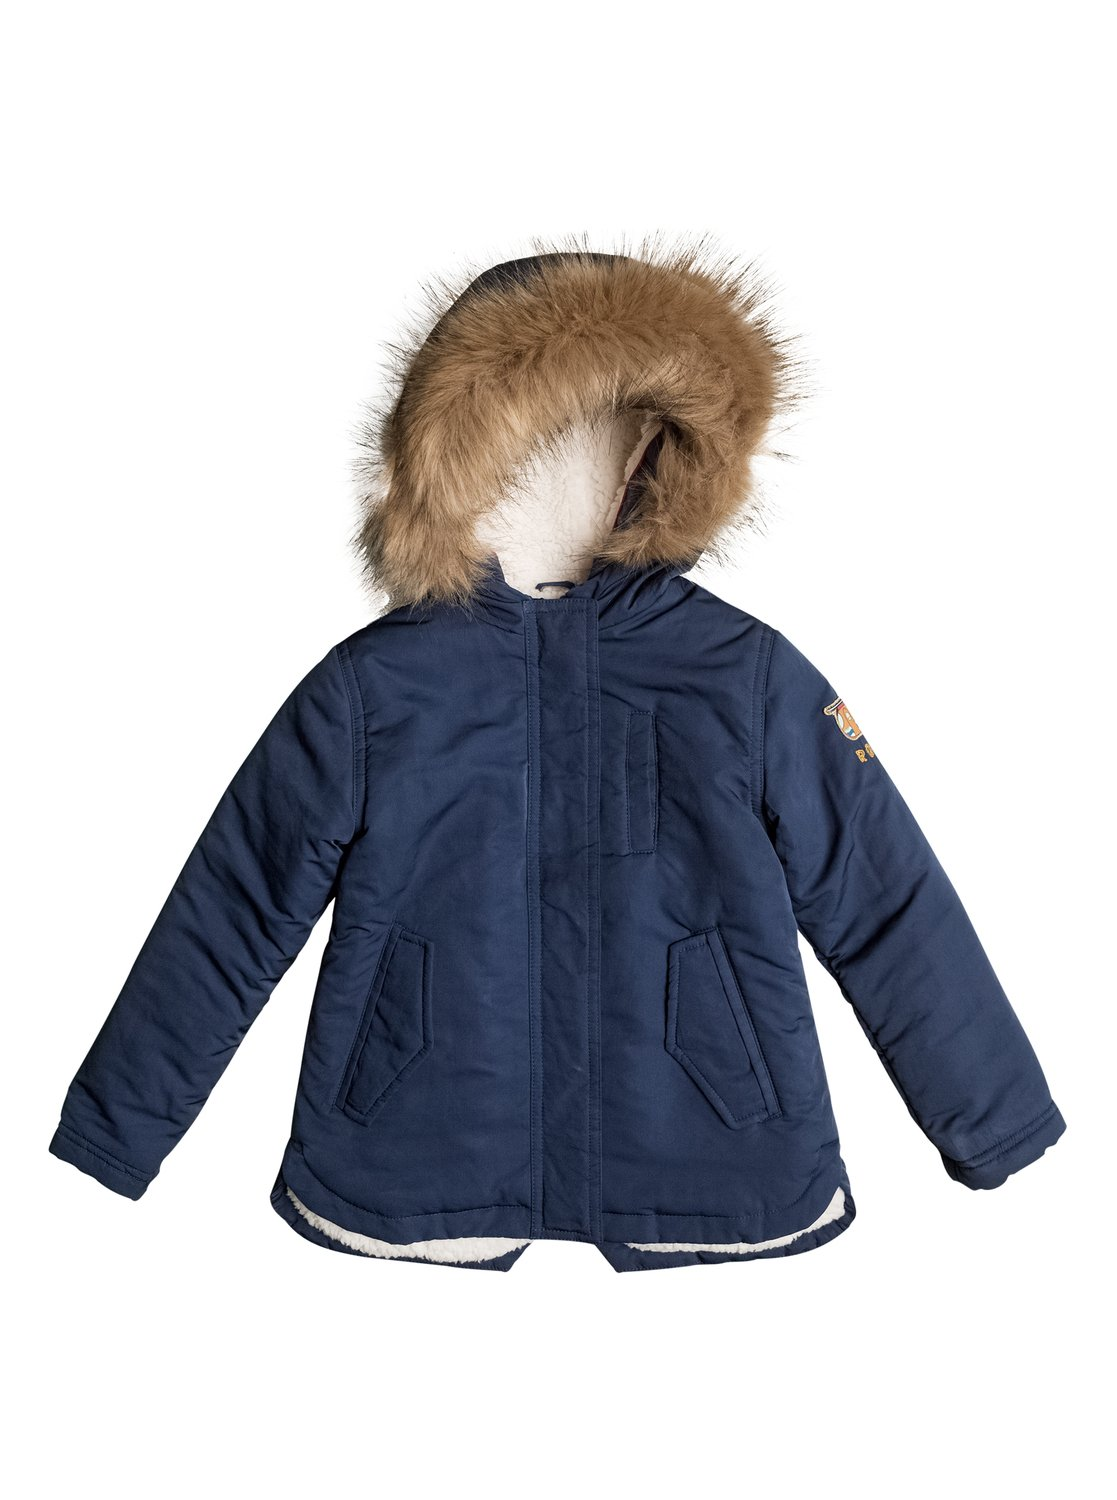 Singing Birds - Chaqueta parka para Chicas Roxy